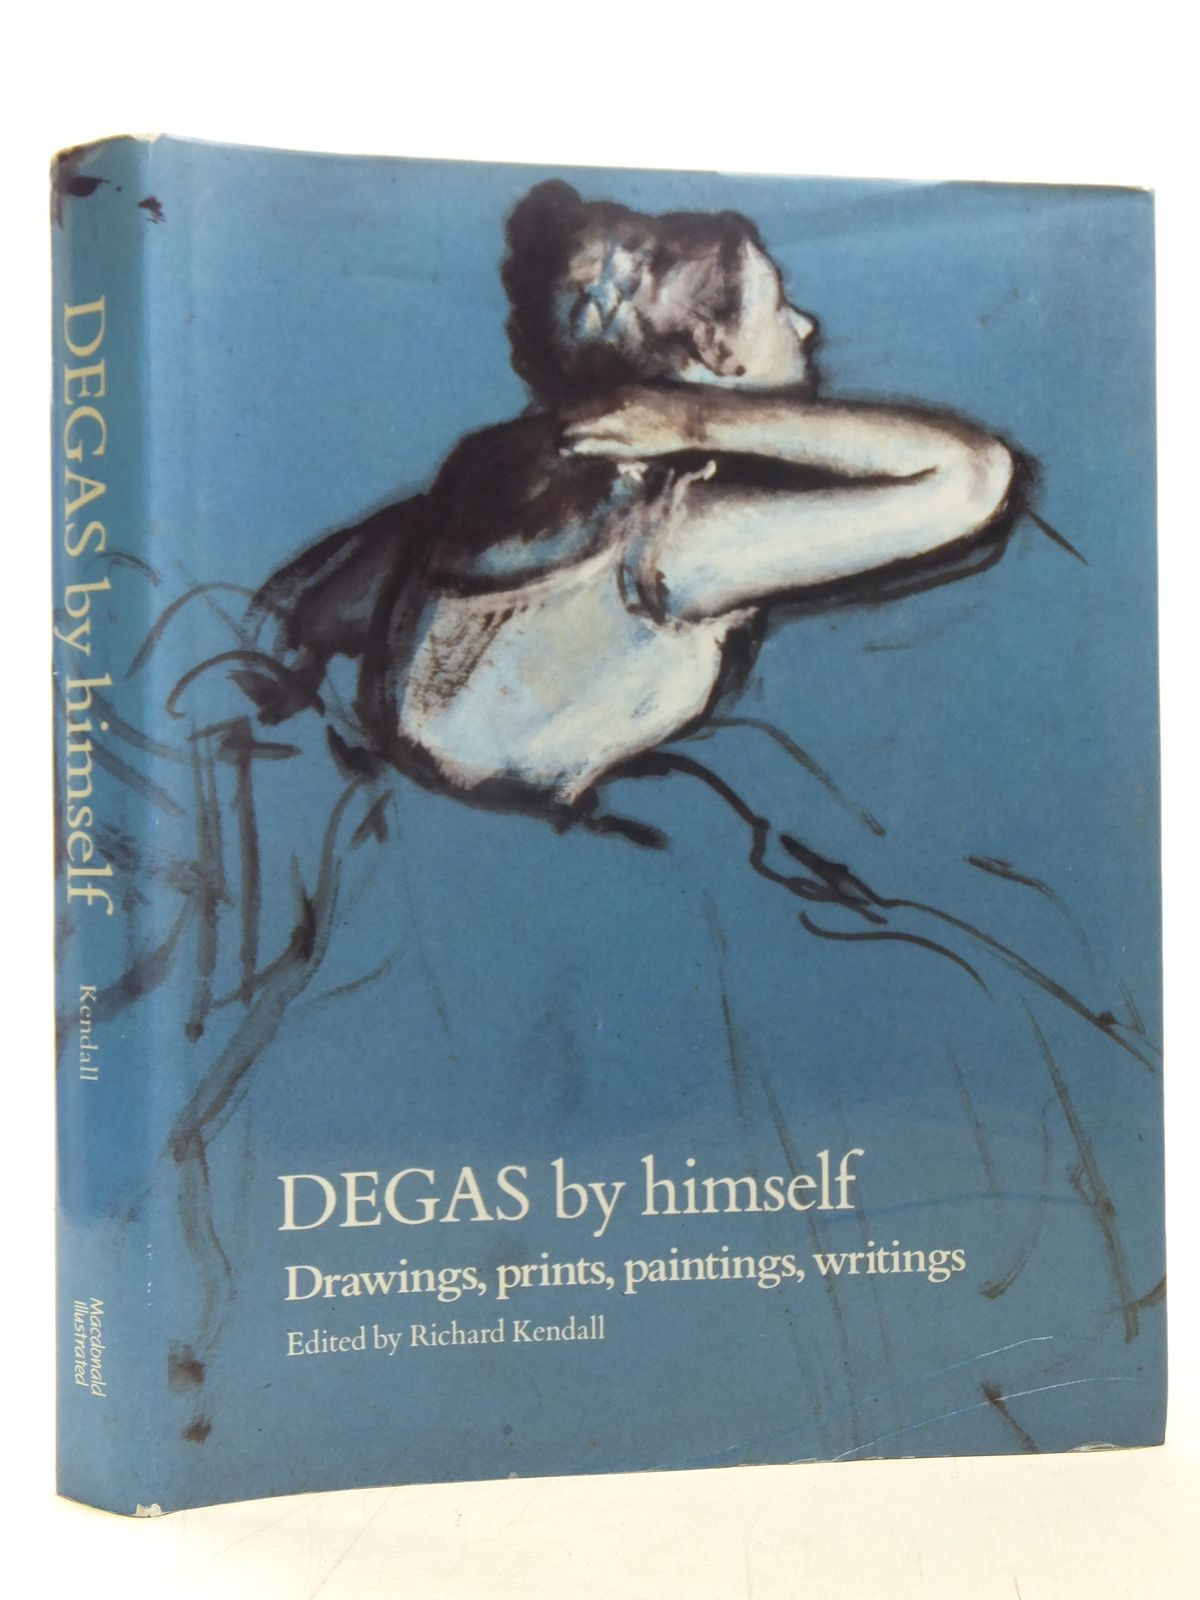 Photo of DEGAS BY HIMSELF written by Kendall, Richard illustrated by Degas, Edgar published by Macdonald & Co. (Publishers) Ltd. (STOCK CODE: 2117312)  for sale by Stella & Rose's Books